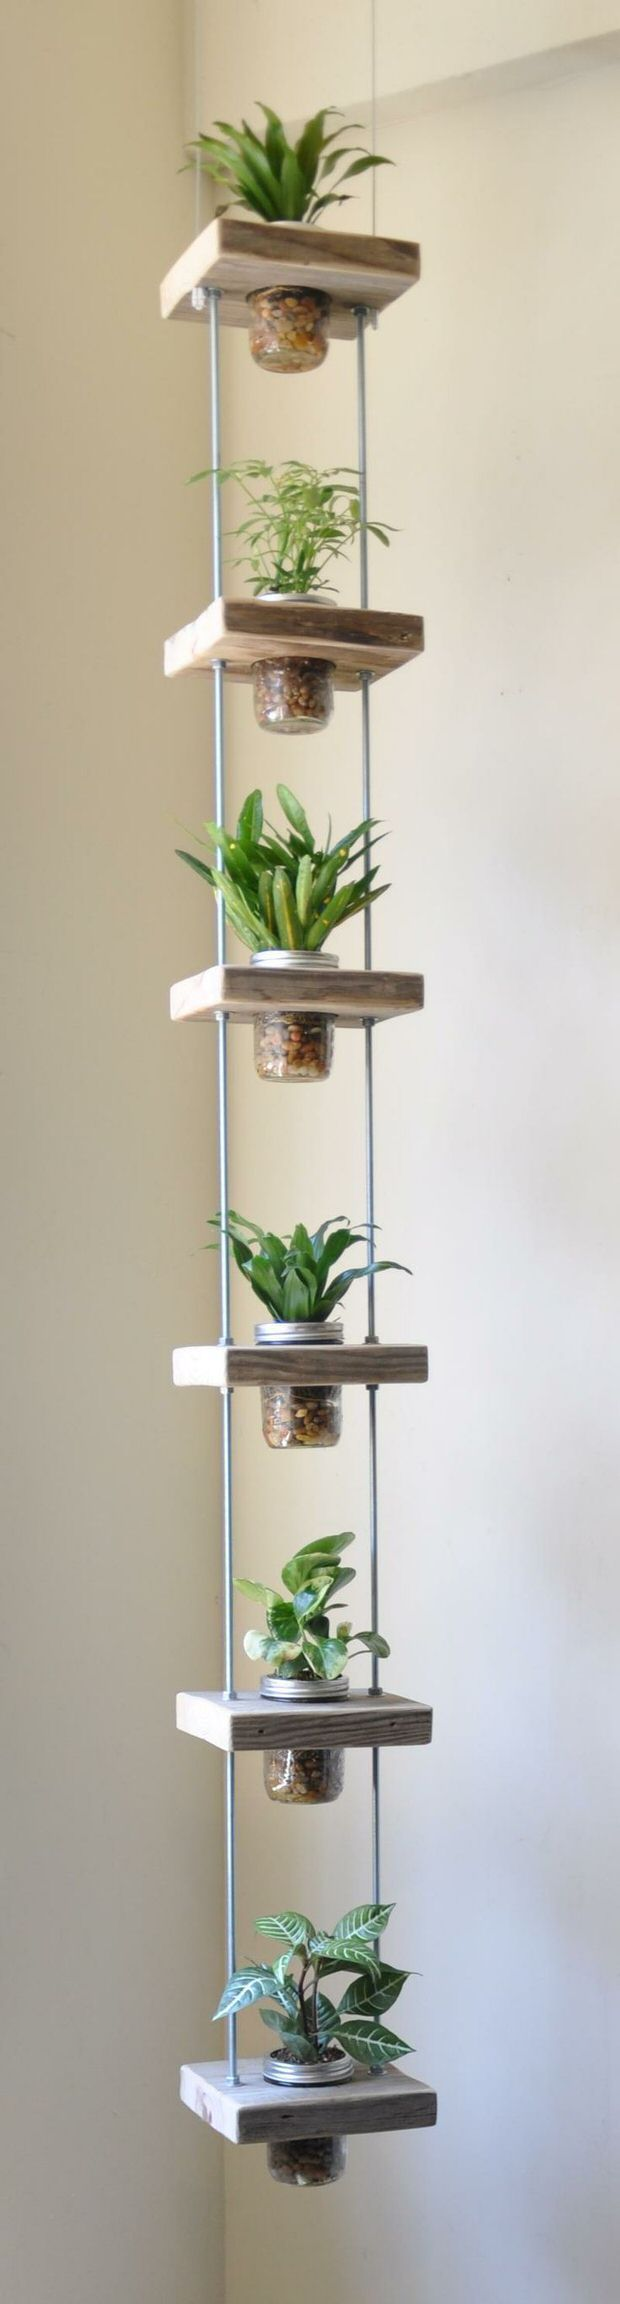 Creative indoor vertical indoor garden